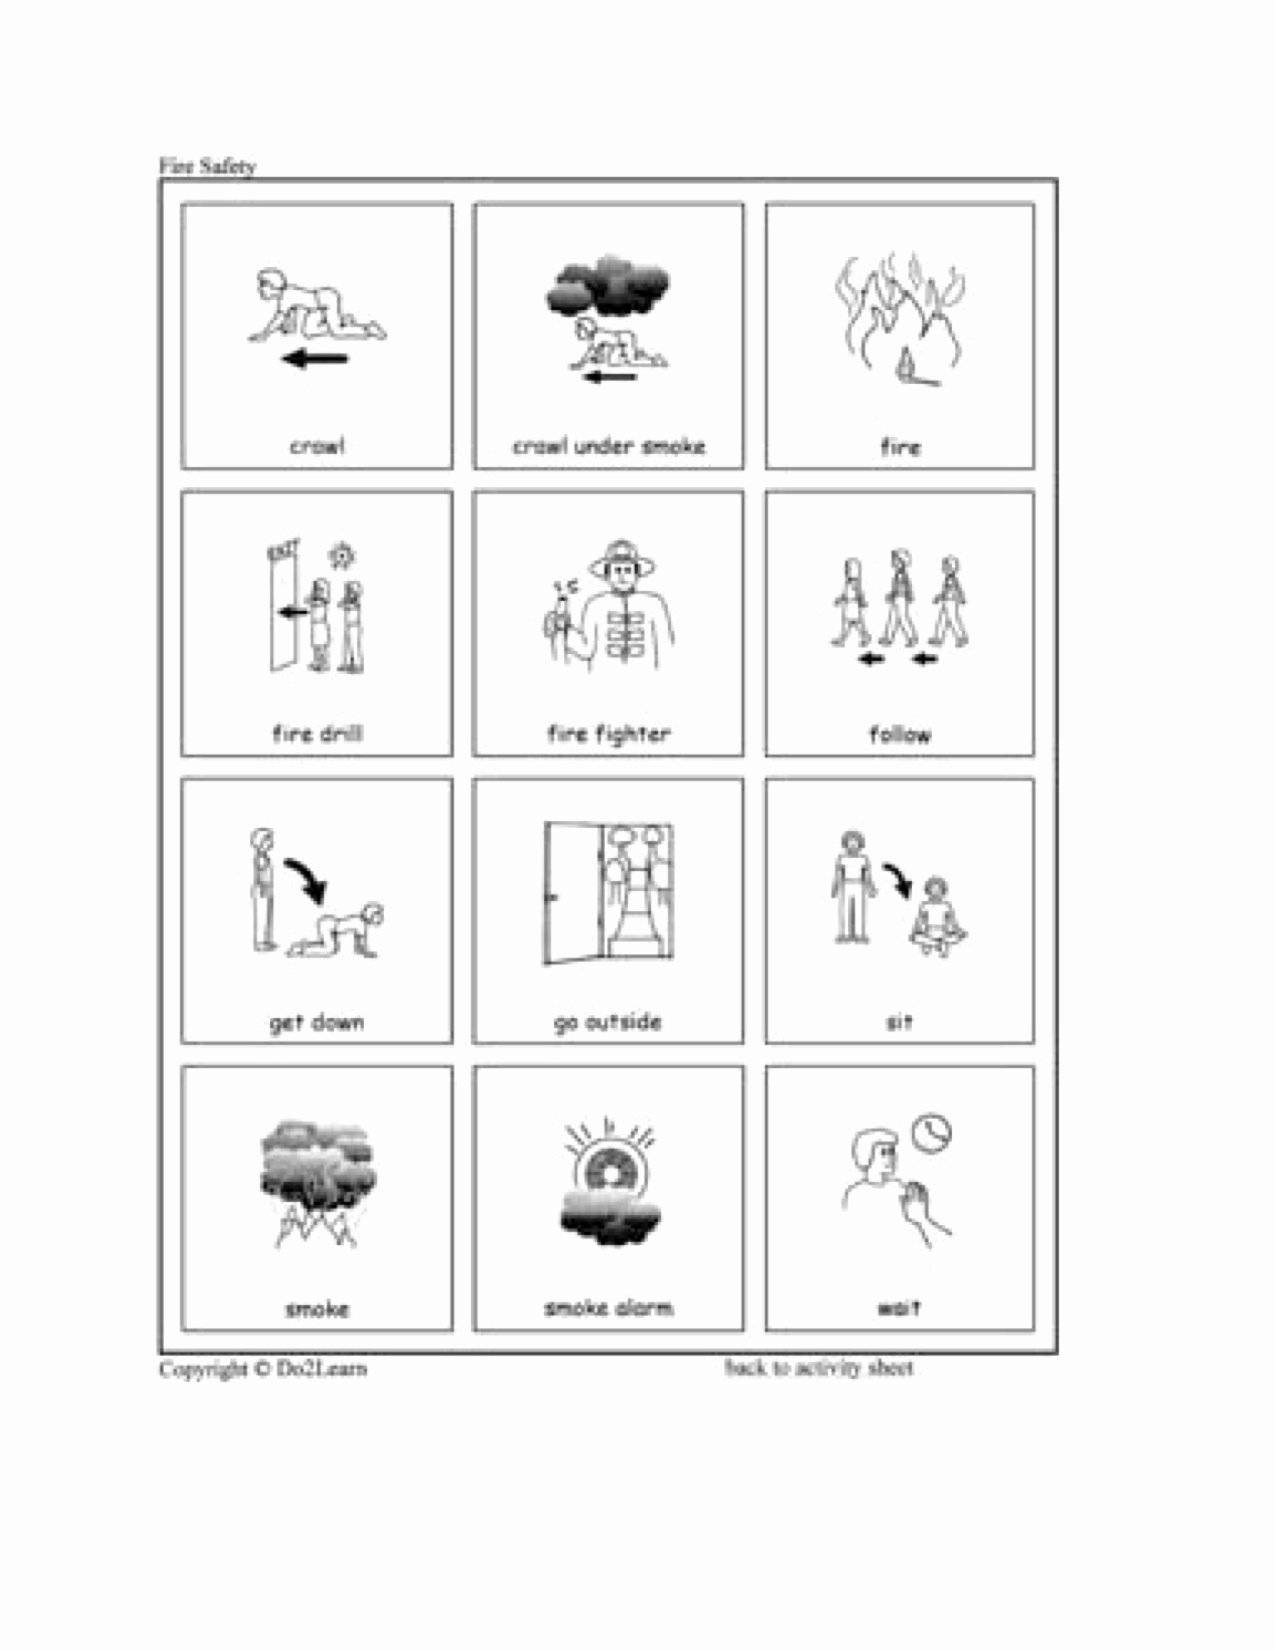 911 Worksheets for Preschoolers top Fire Safety